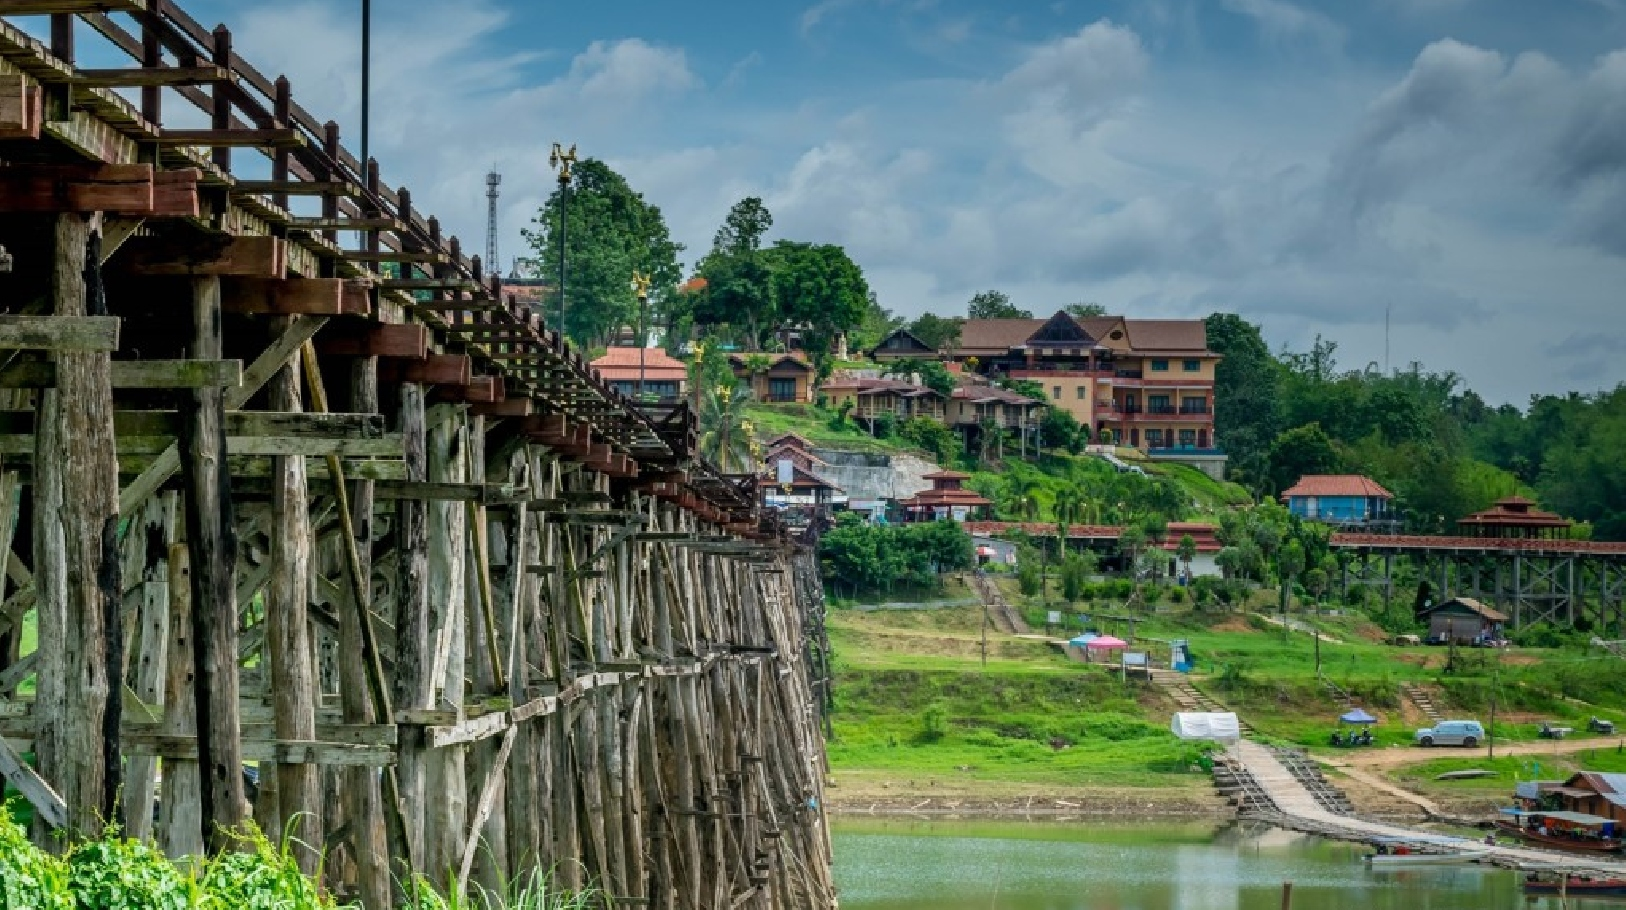 The Bridge sangkhlaburi2